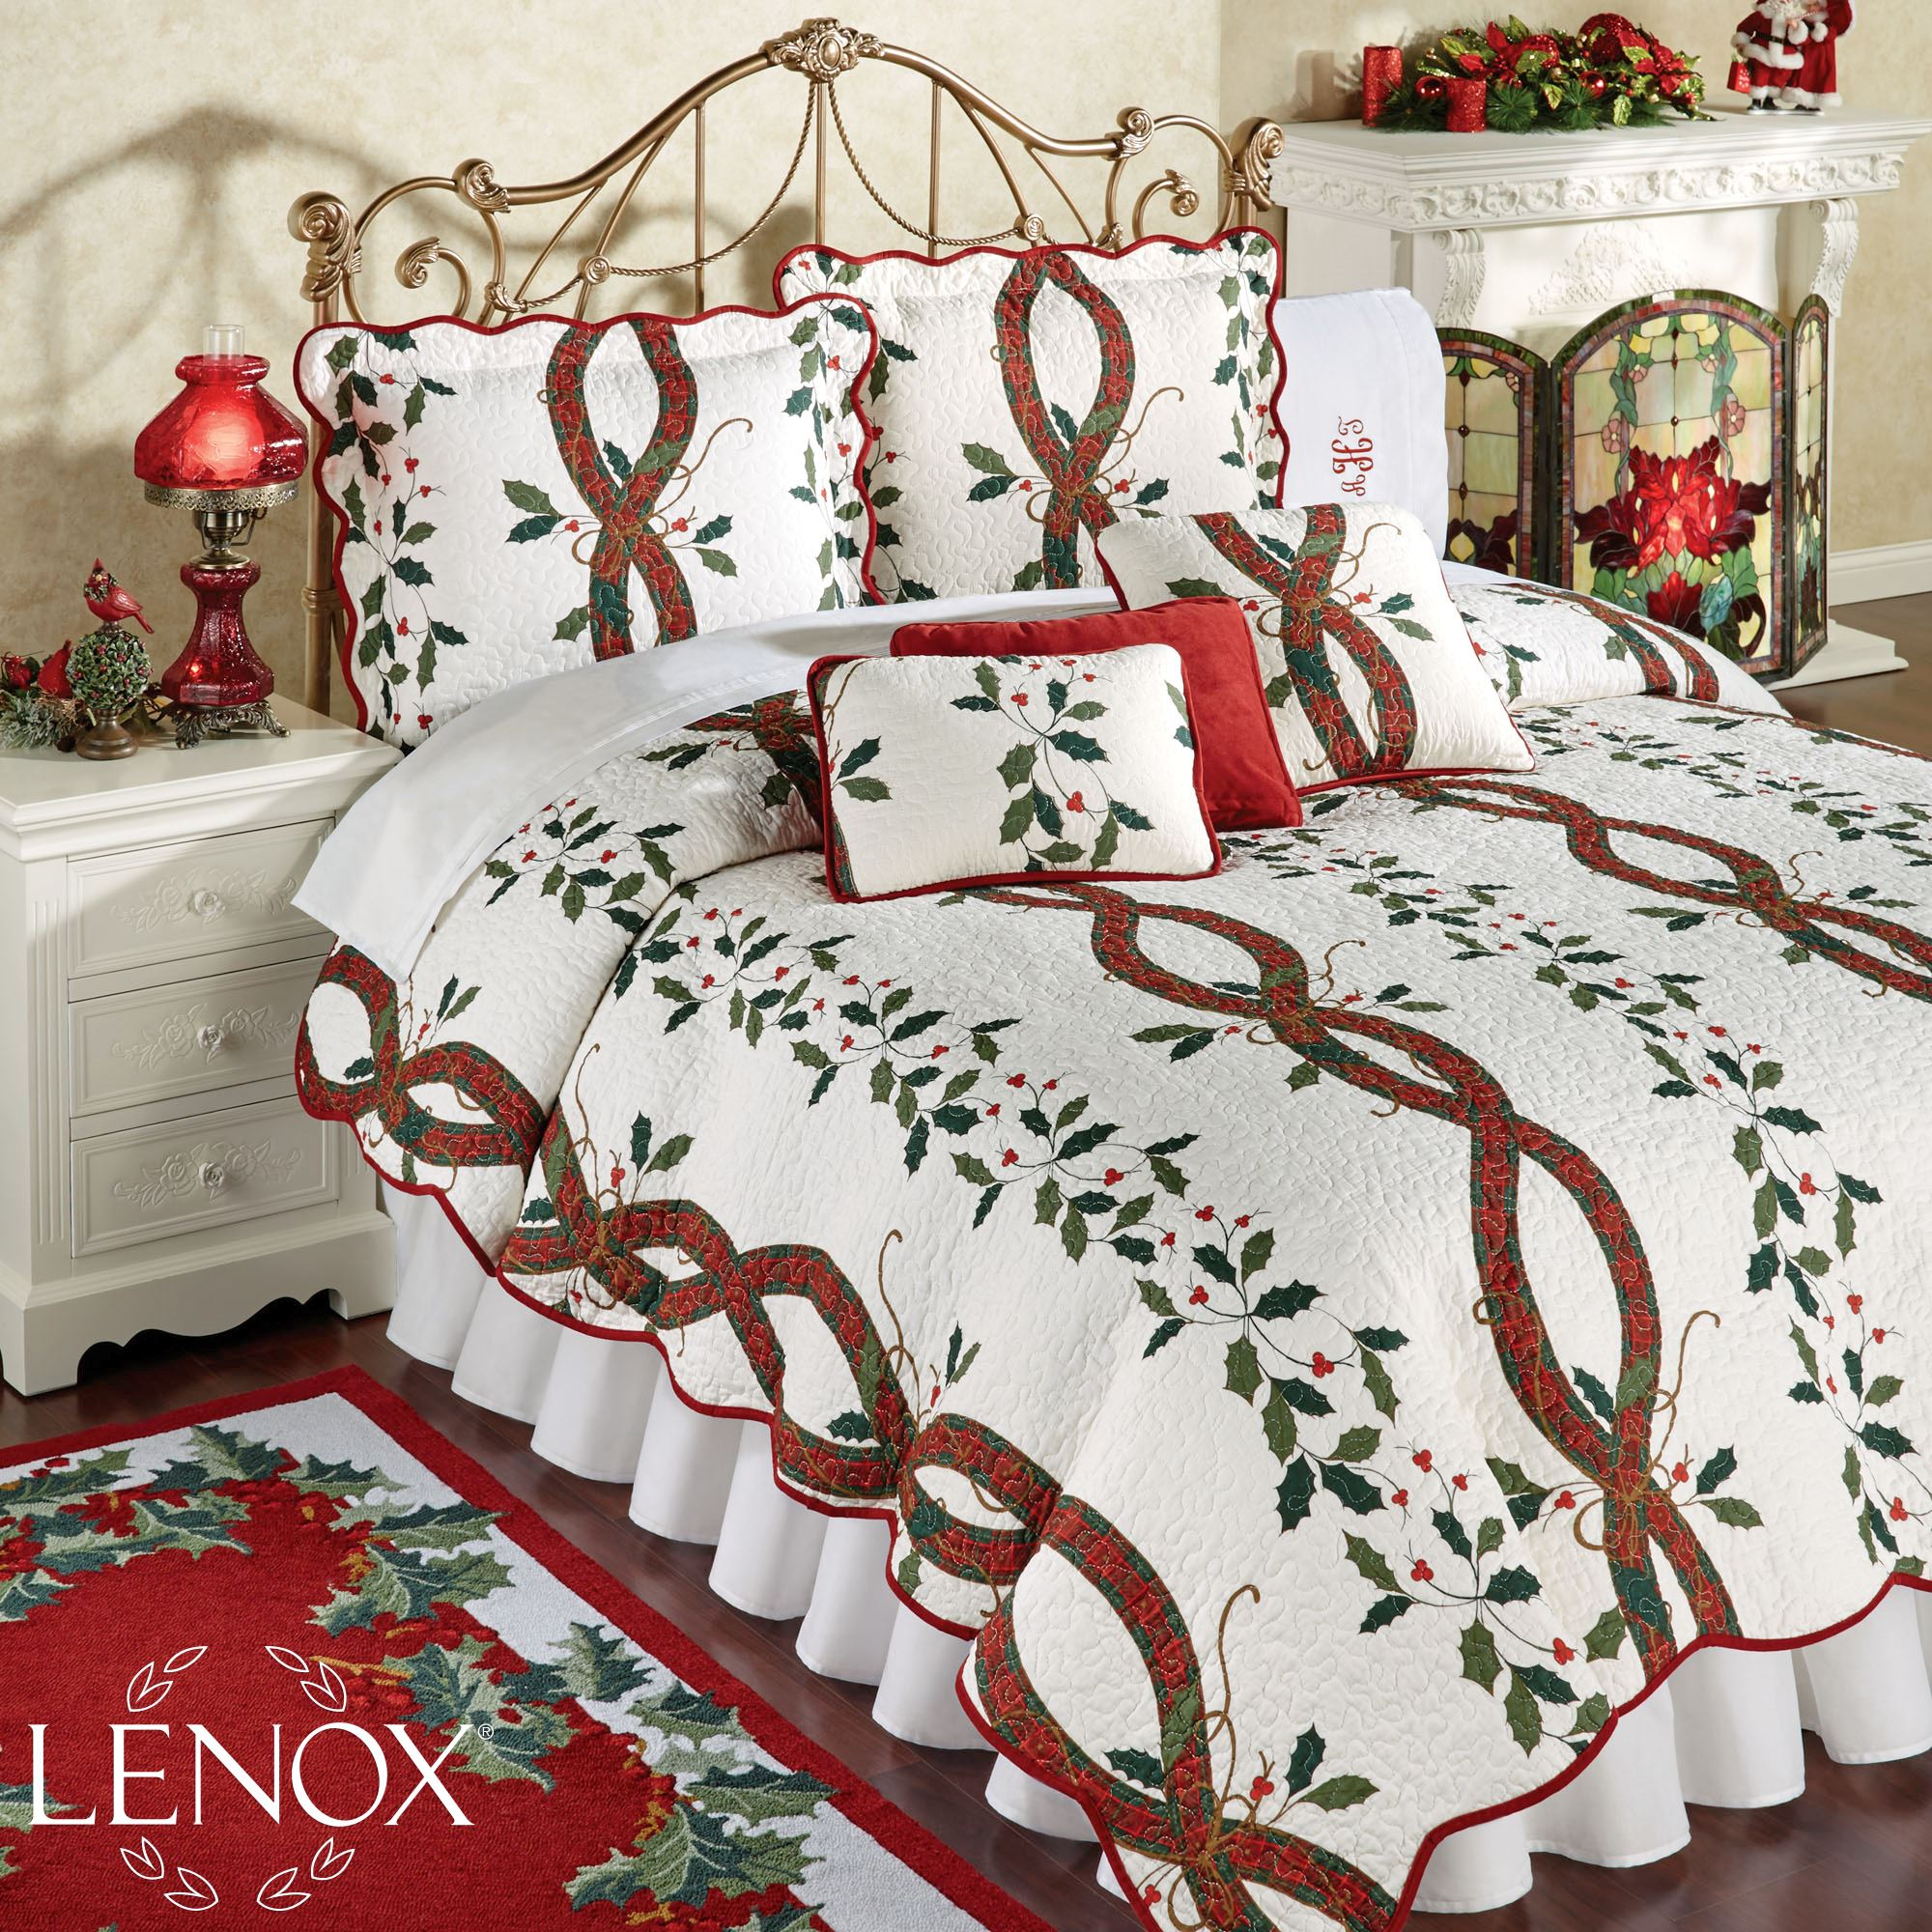 Nouveau Stripe Holly Holiday Quilt Bedding - a Lenox design : holiday bedding quilts - Adamdwight.com